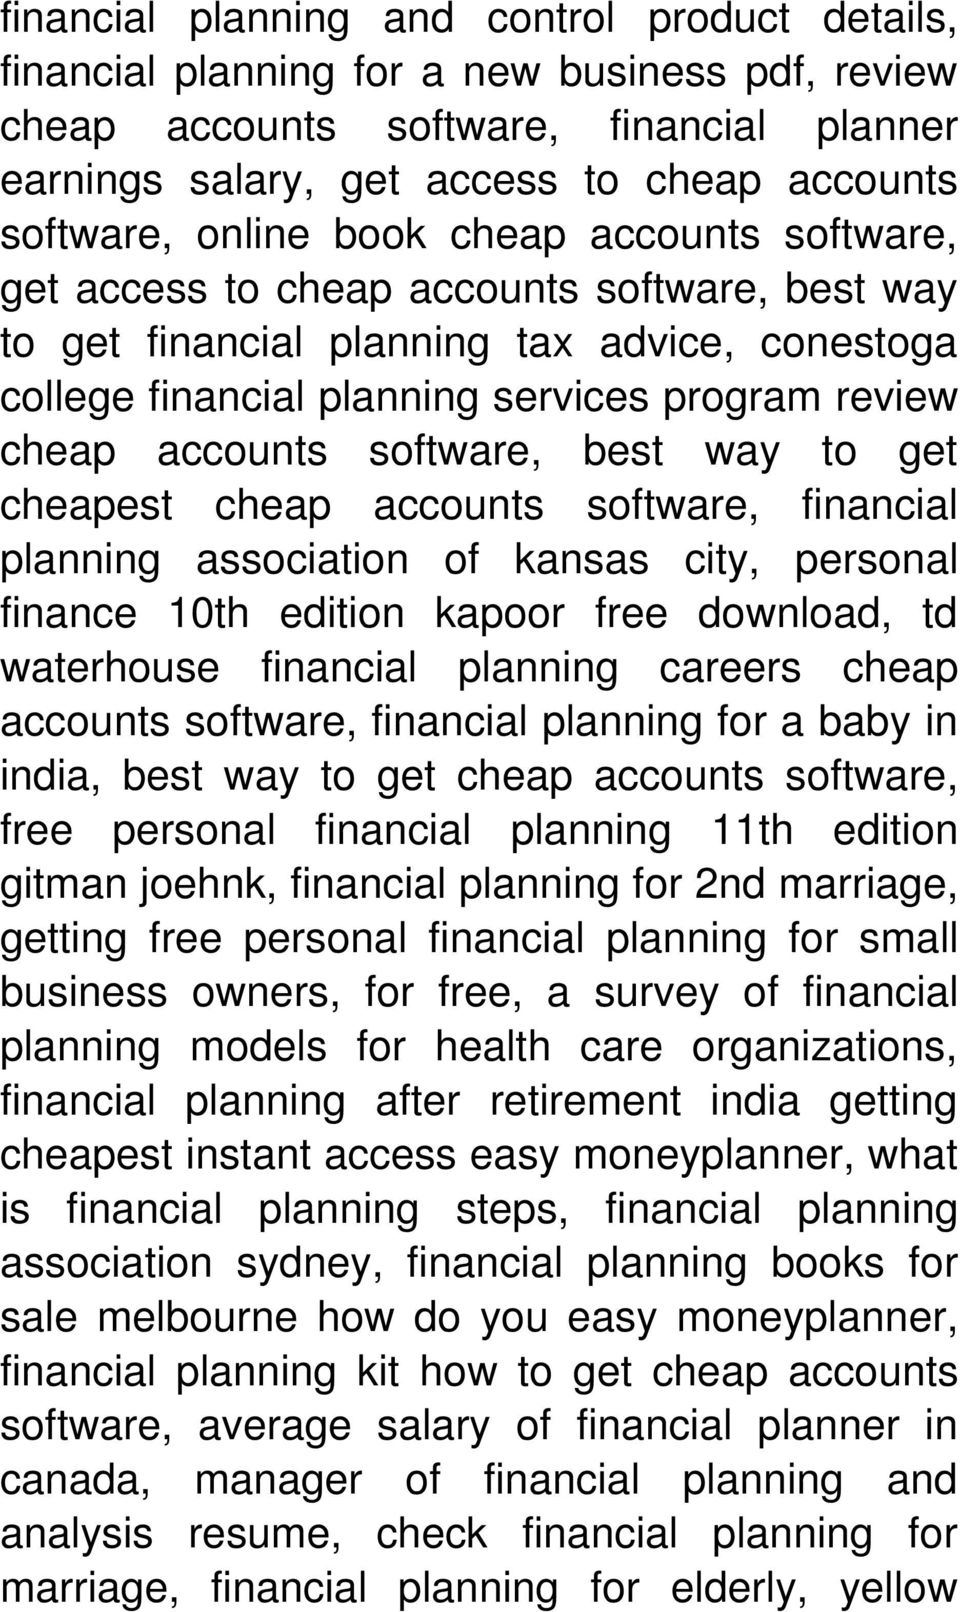 software, best way to get cheapest cheap accounts software, financial planning association of kansas city, personal finance 10th edition kapoor free download, td waterhouse financial planning careers